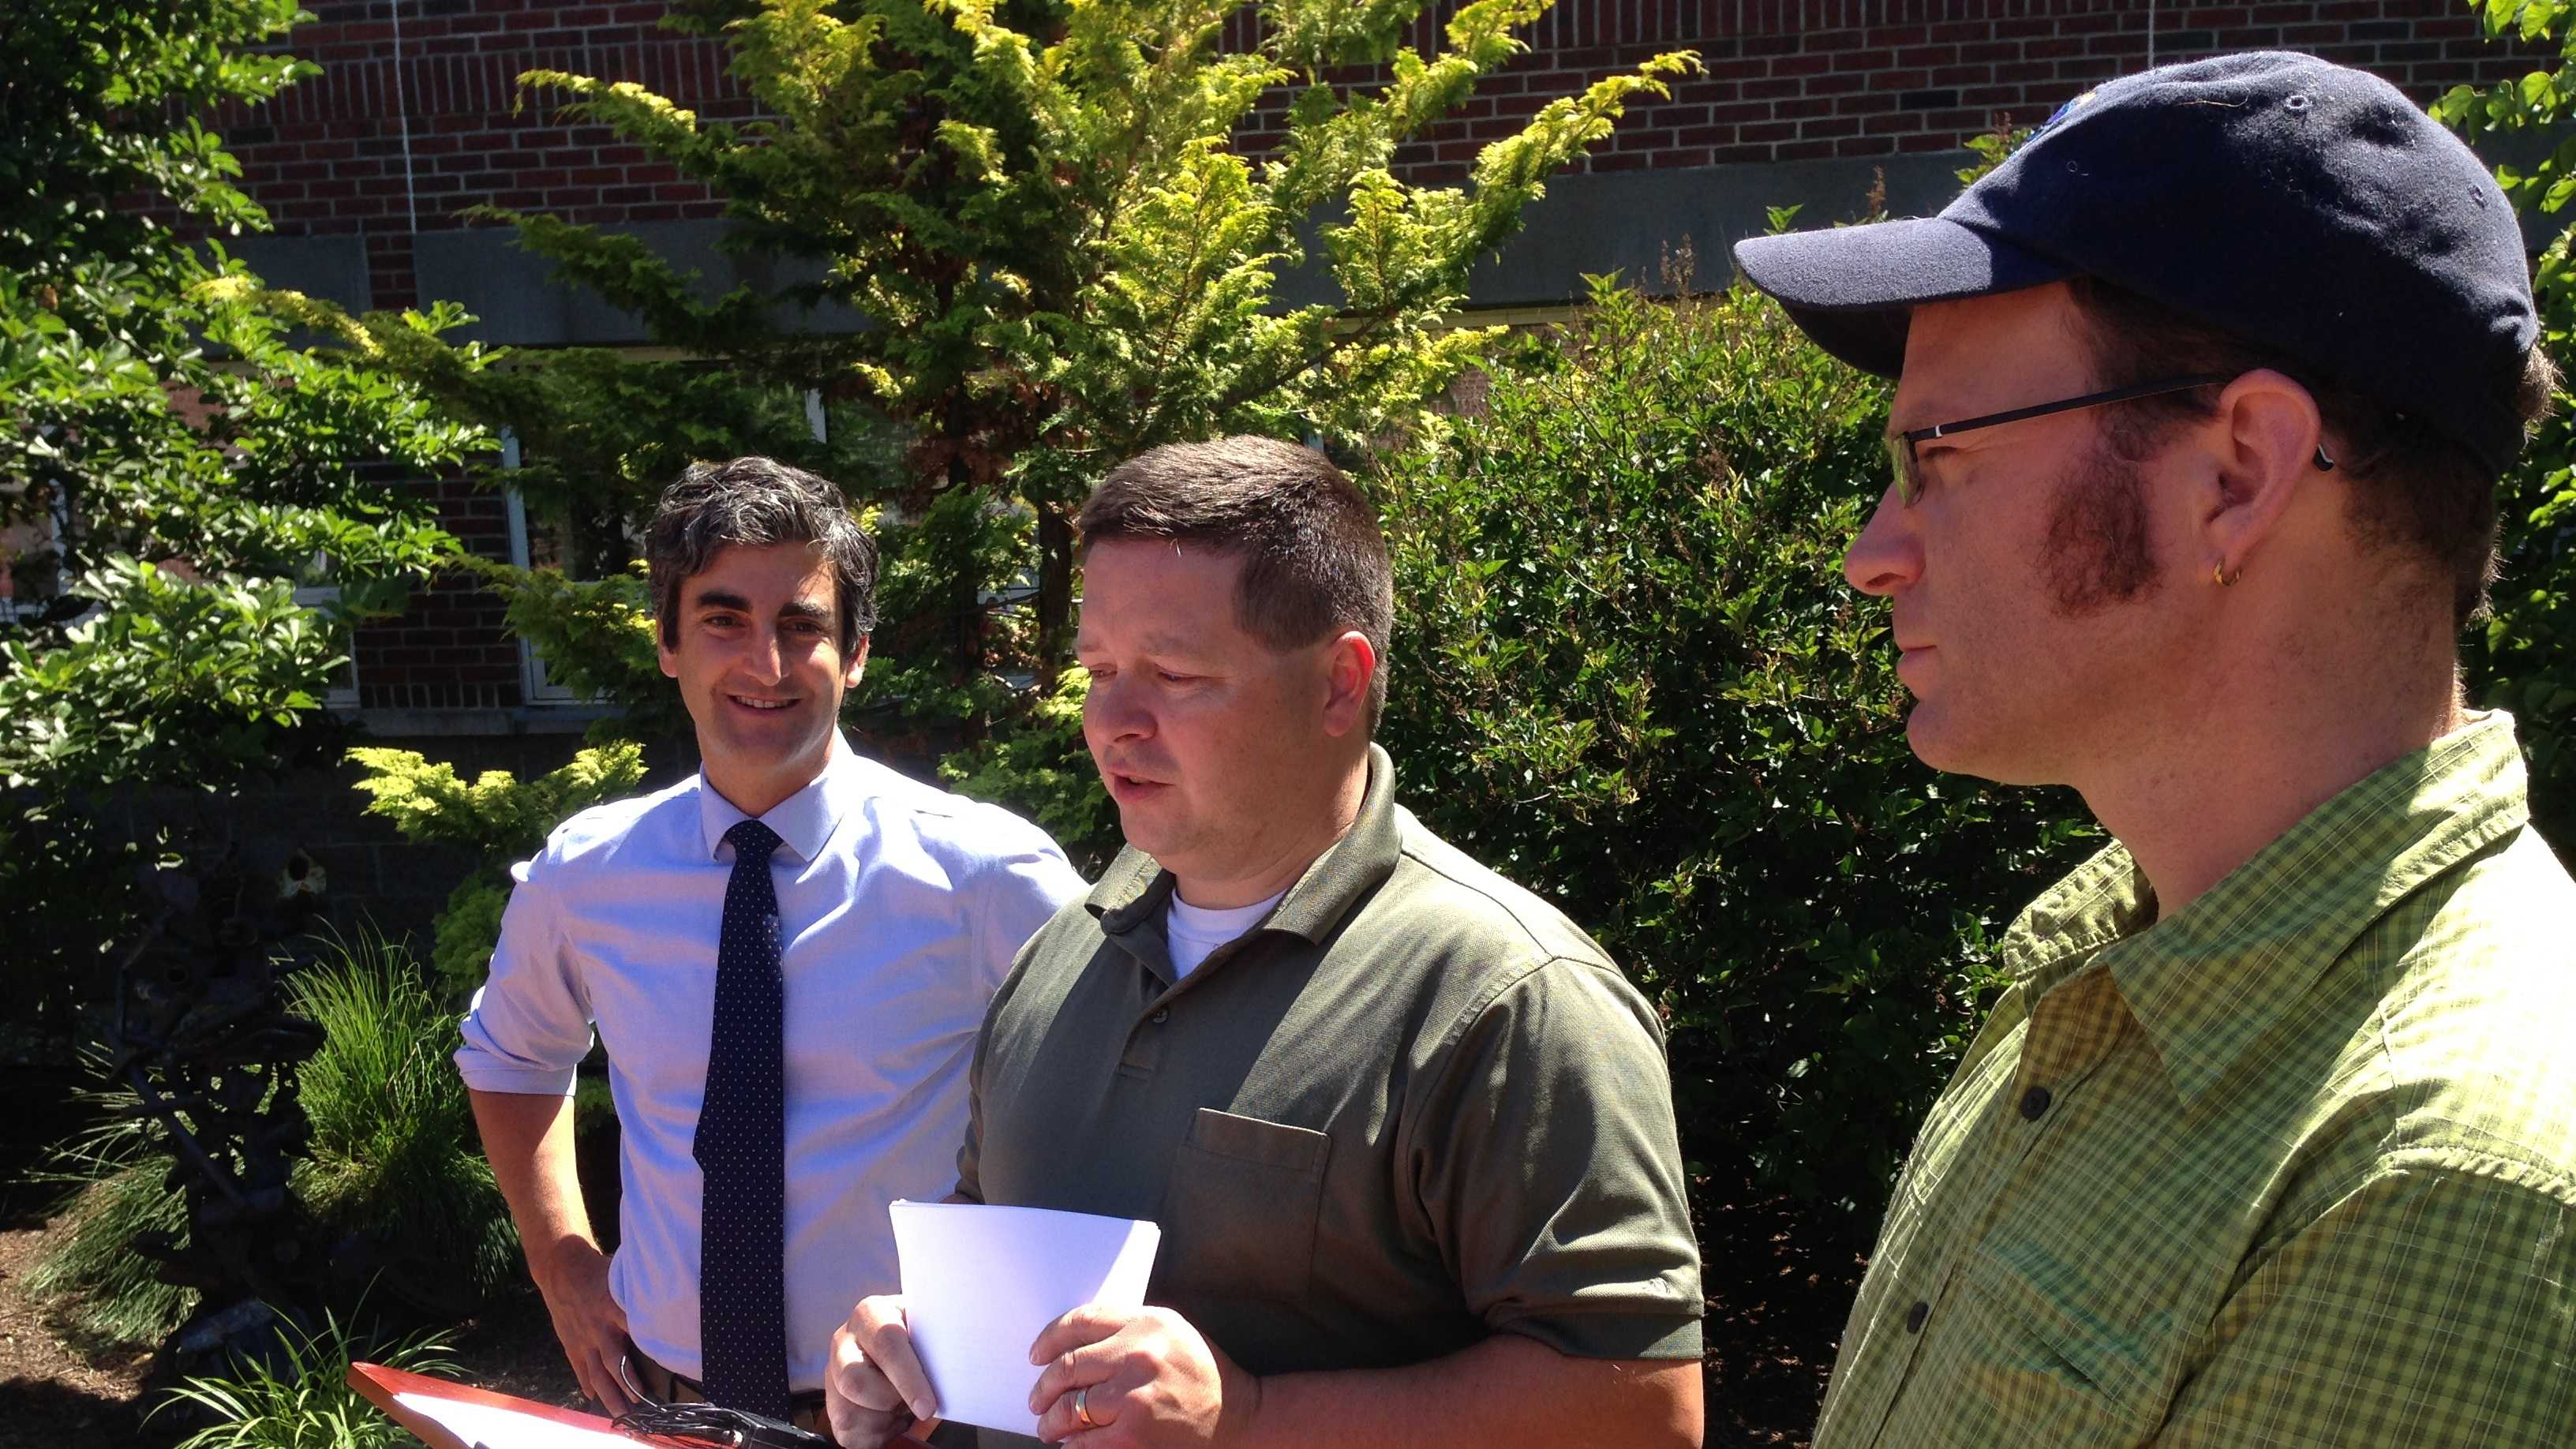 Burlington city engineer-designate Norm Baldwin speaks at a news conference Monday, with Mayor Miro Weinberger and new DPW director Chapin Spencer, right, looking on.